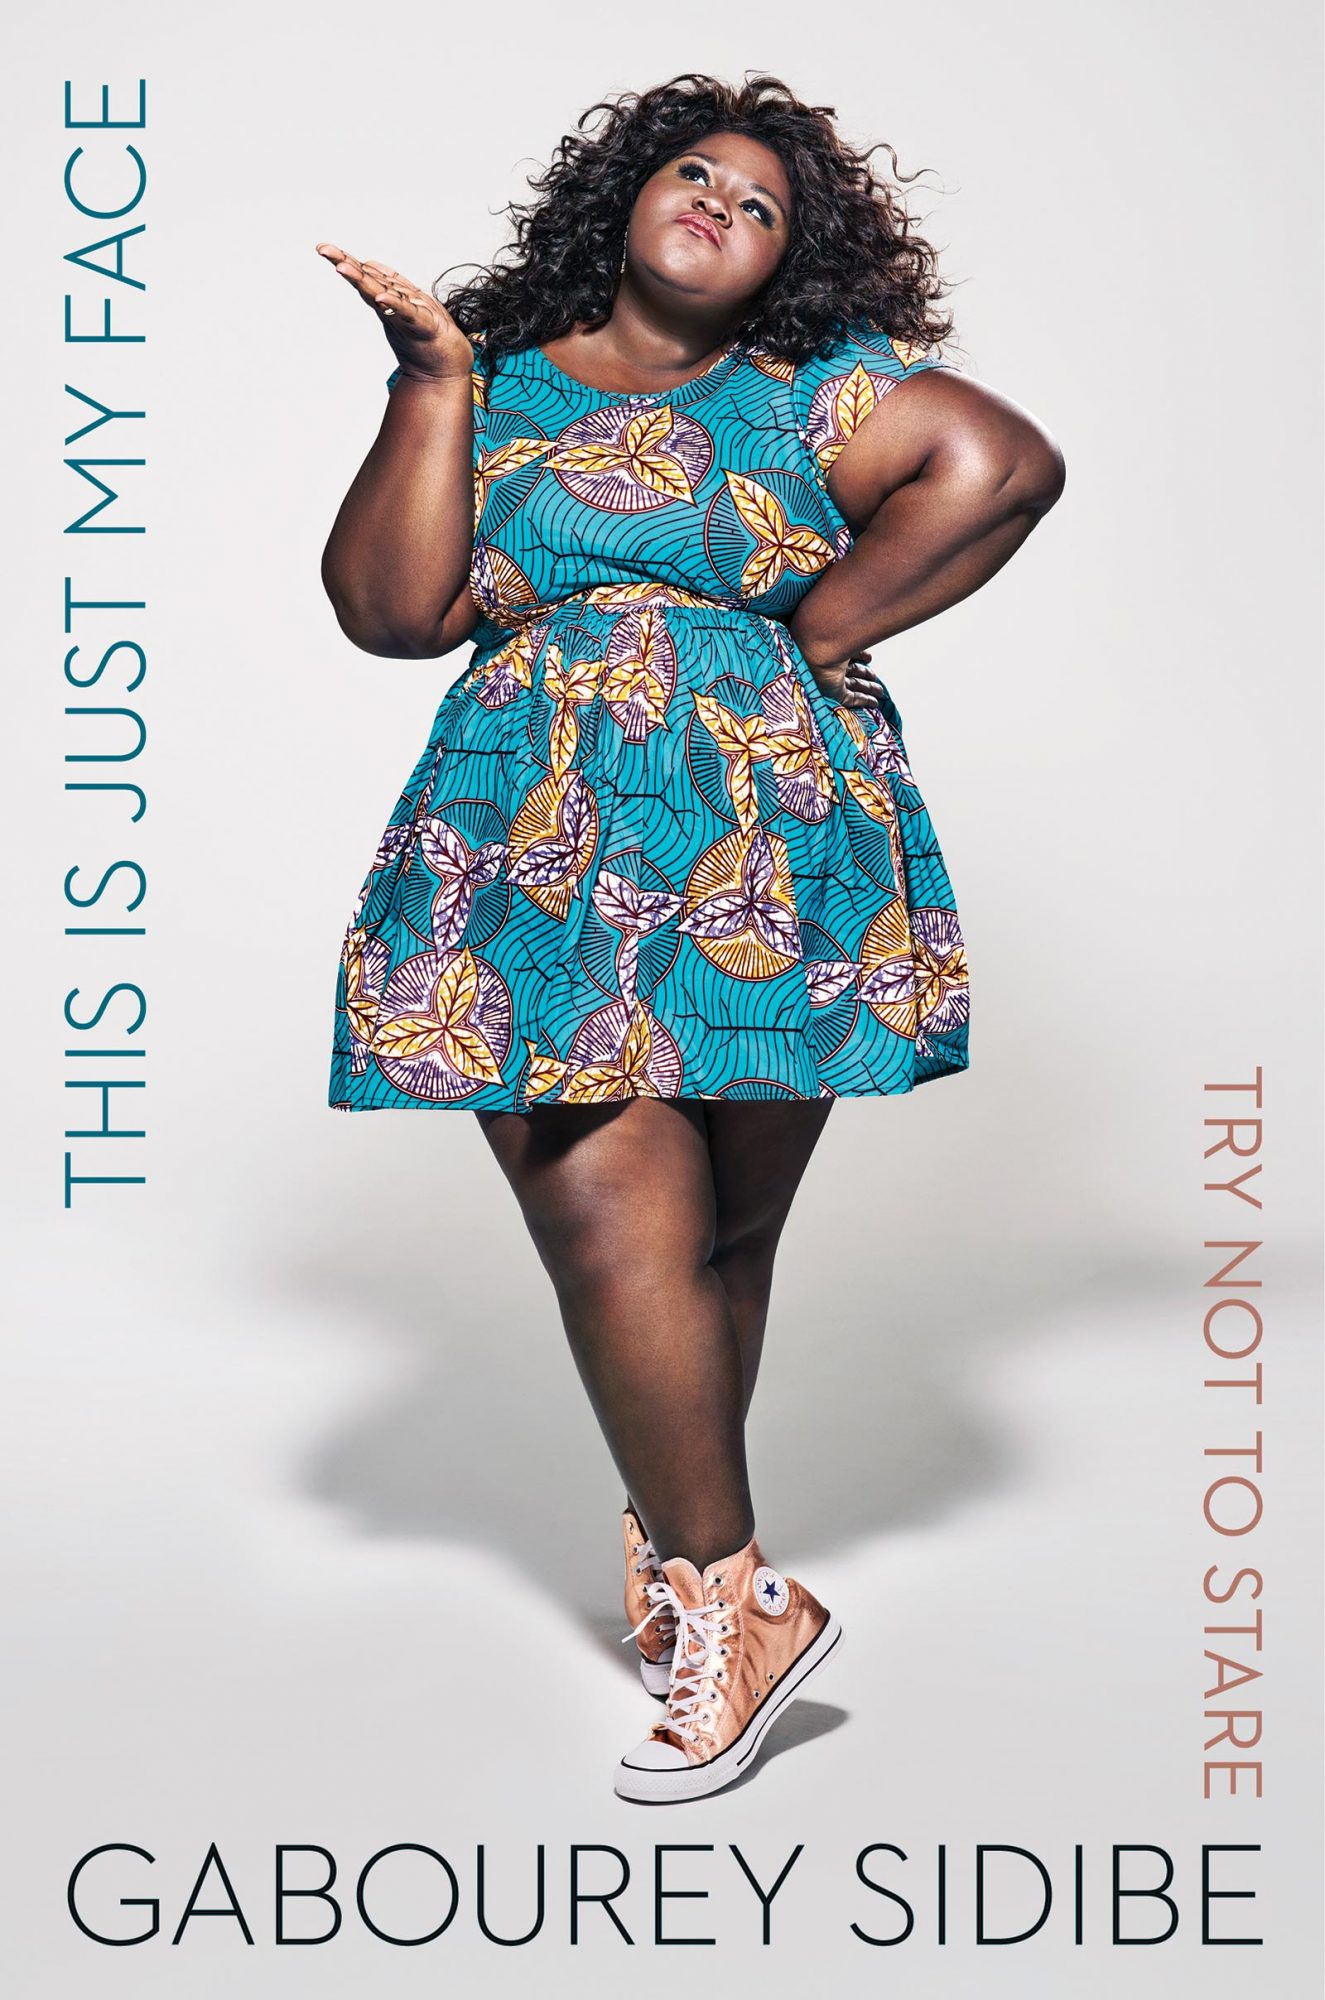 THIS IS JUST MY FACE: TRY NOT TO STARE (5/1/2017)A memoir by Gabourey Sidibe